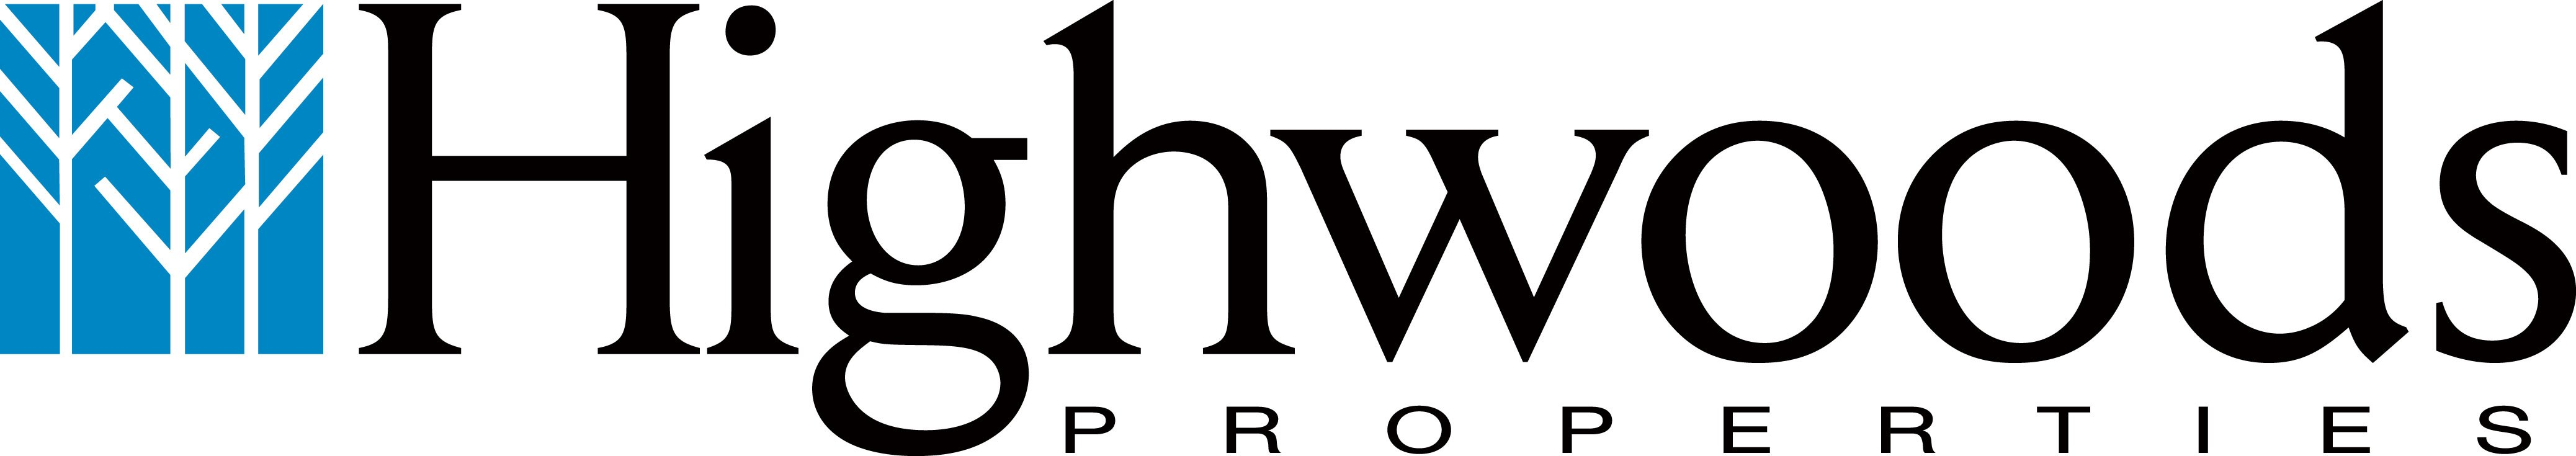 Highwoods Properties, Inc. Logo